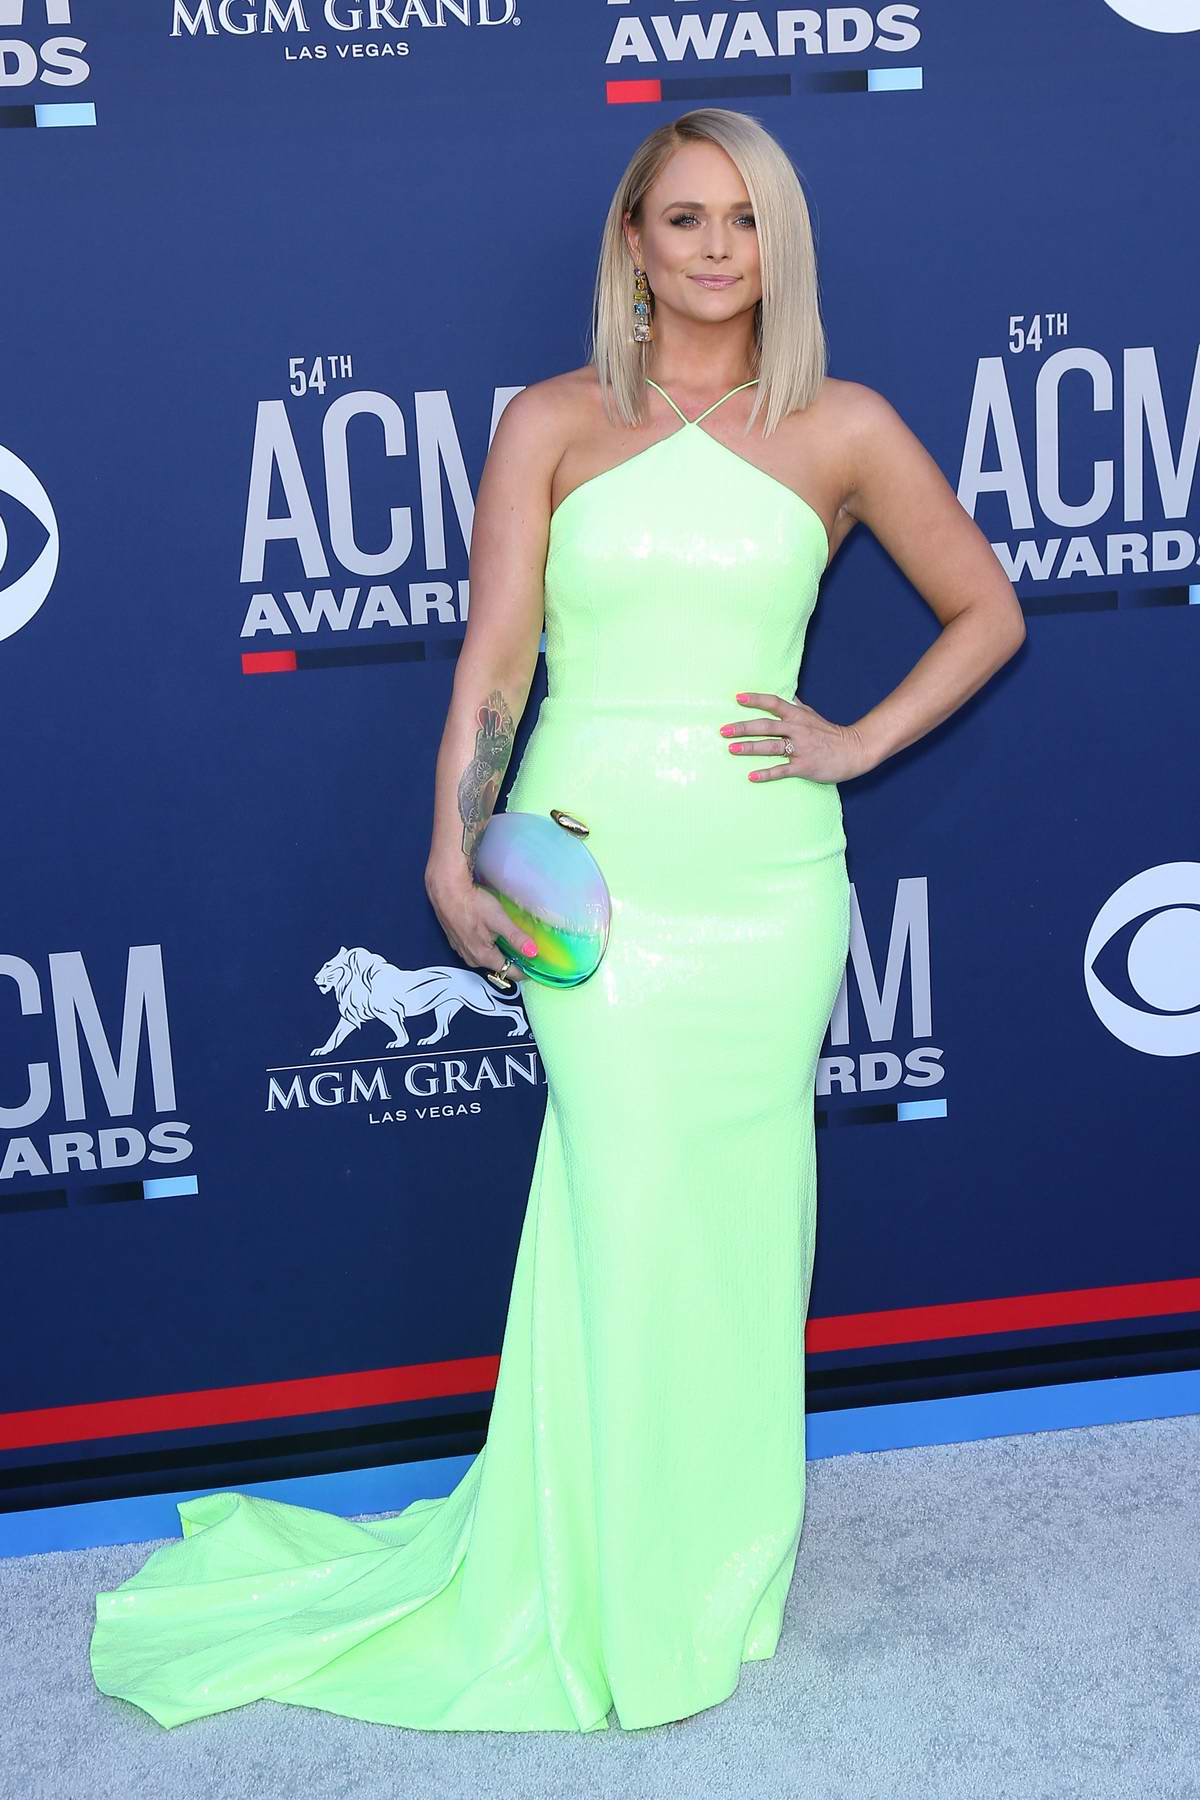 Miranda Lambert attends the 54th Academy of Country Music Awards (ACM 2019) at MGM Grand in Las Vegas, Nevada